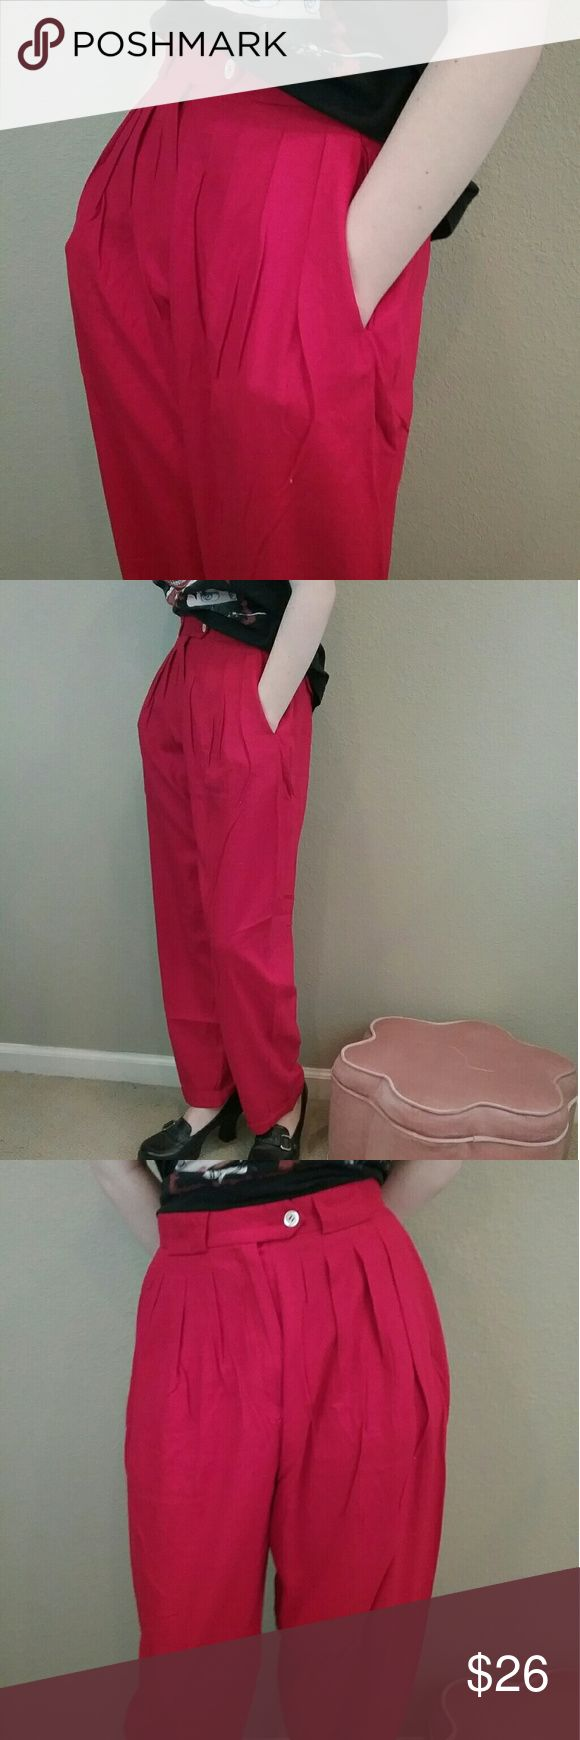 Vintage 80s Liz Claiborne red high waist trousers Red is thee fall go to color! Vintage 80s  High waist perfect fit trouser Pleated front Side pockets & functioning back pockets Liz Claiborne label 100% raw silk with a natural nubby feel Size 8 but Fits smaller (See measurements) Waist 26 in Hips 42 in  Rise 12 in Inseam 30 in  Excellent condition  Wear with flats, a chunky knit sweater and a red lip for a fall winter look Liz Claiborne Pants Trousers